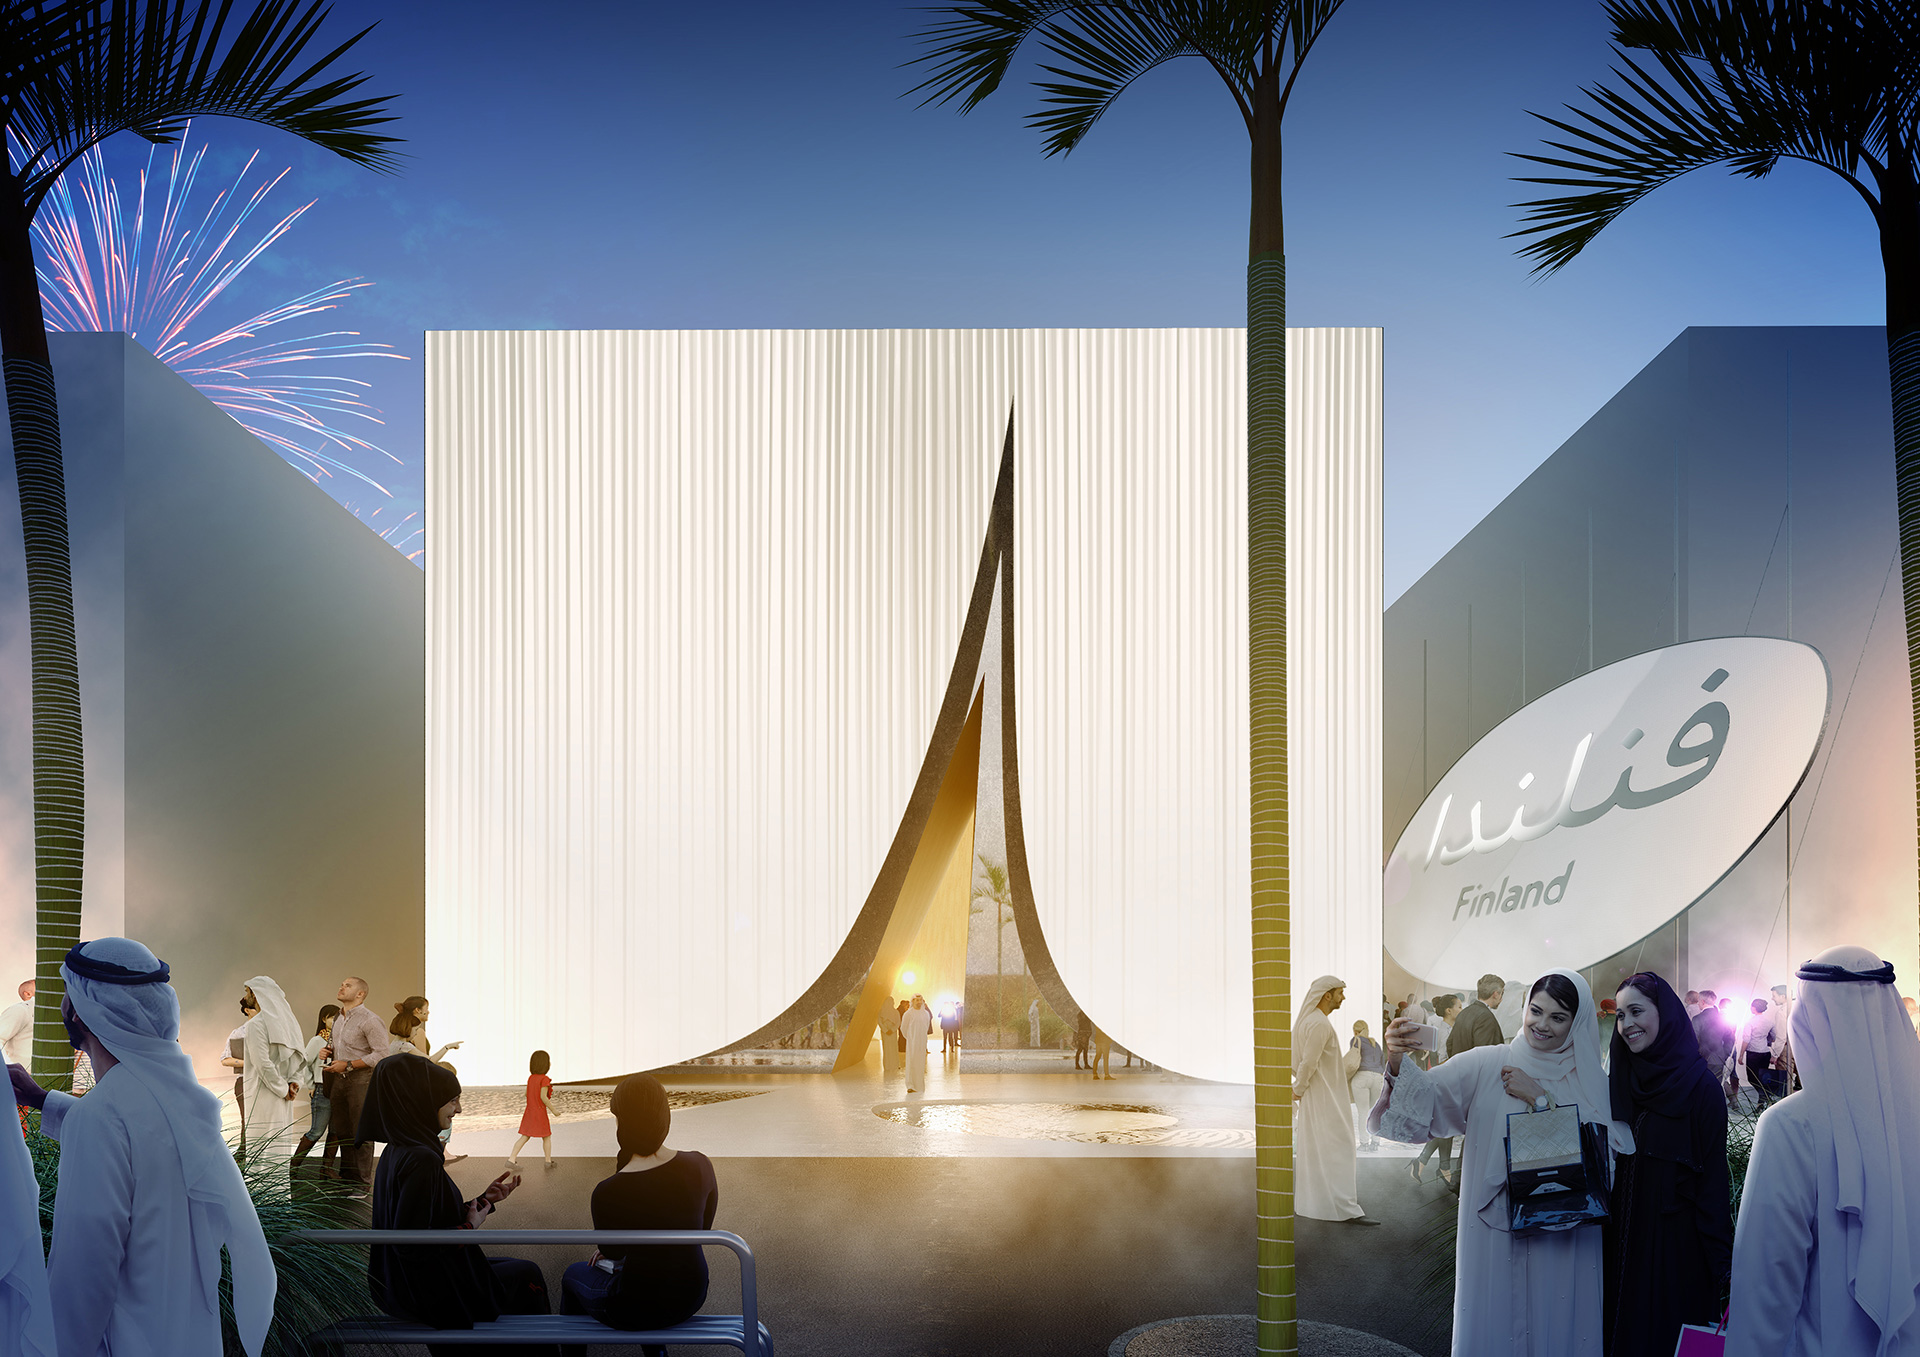 The Finland Pavilion by architecture firm JKMM at the Expo 2020 Dubai | Mobility | Pavilion | Expo 2020| Dubai| STIRworld